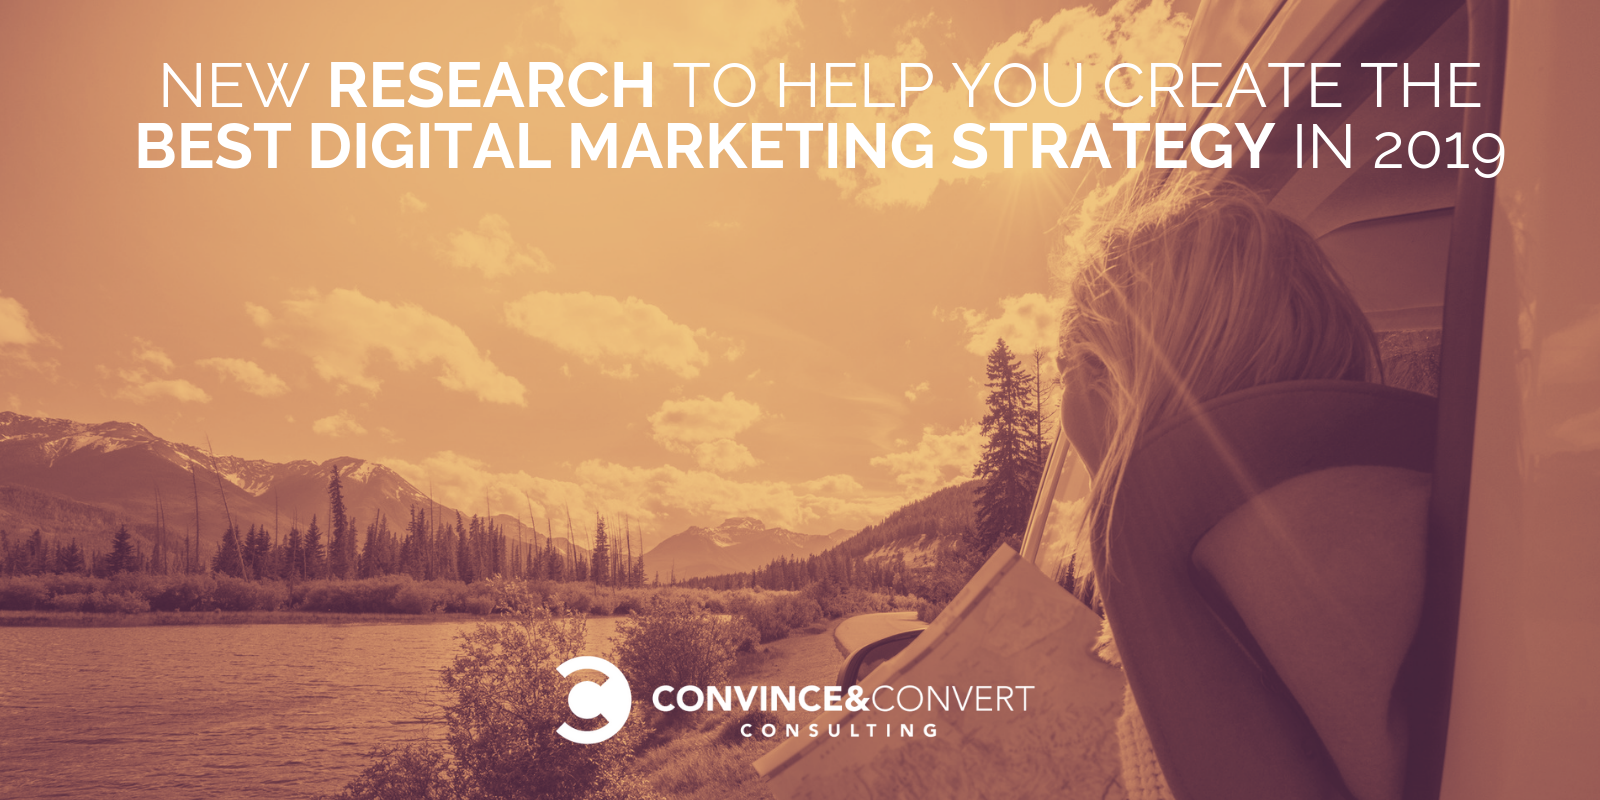 New Research to Help You Create the Best Digital Marketing Strategy in 2019